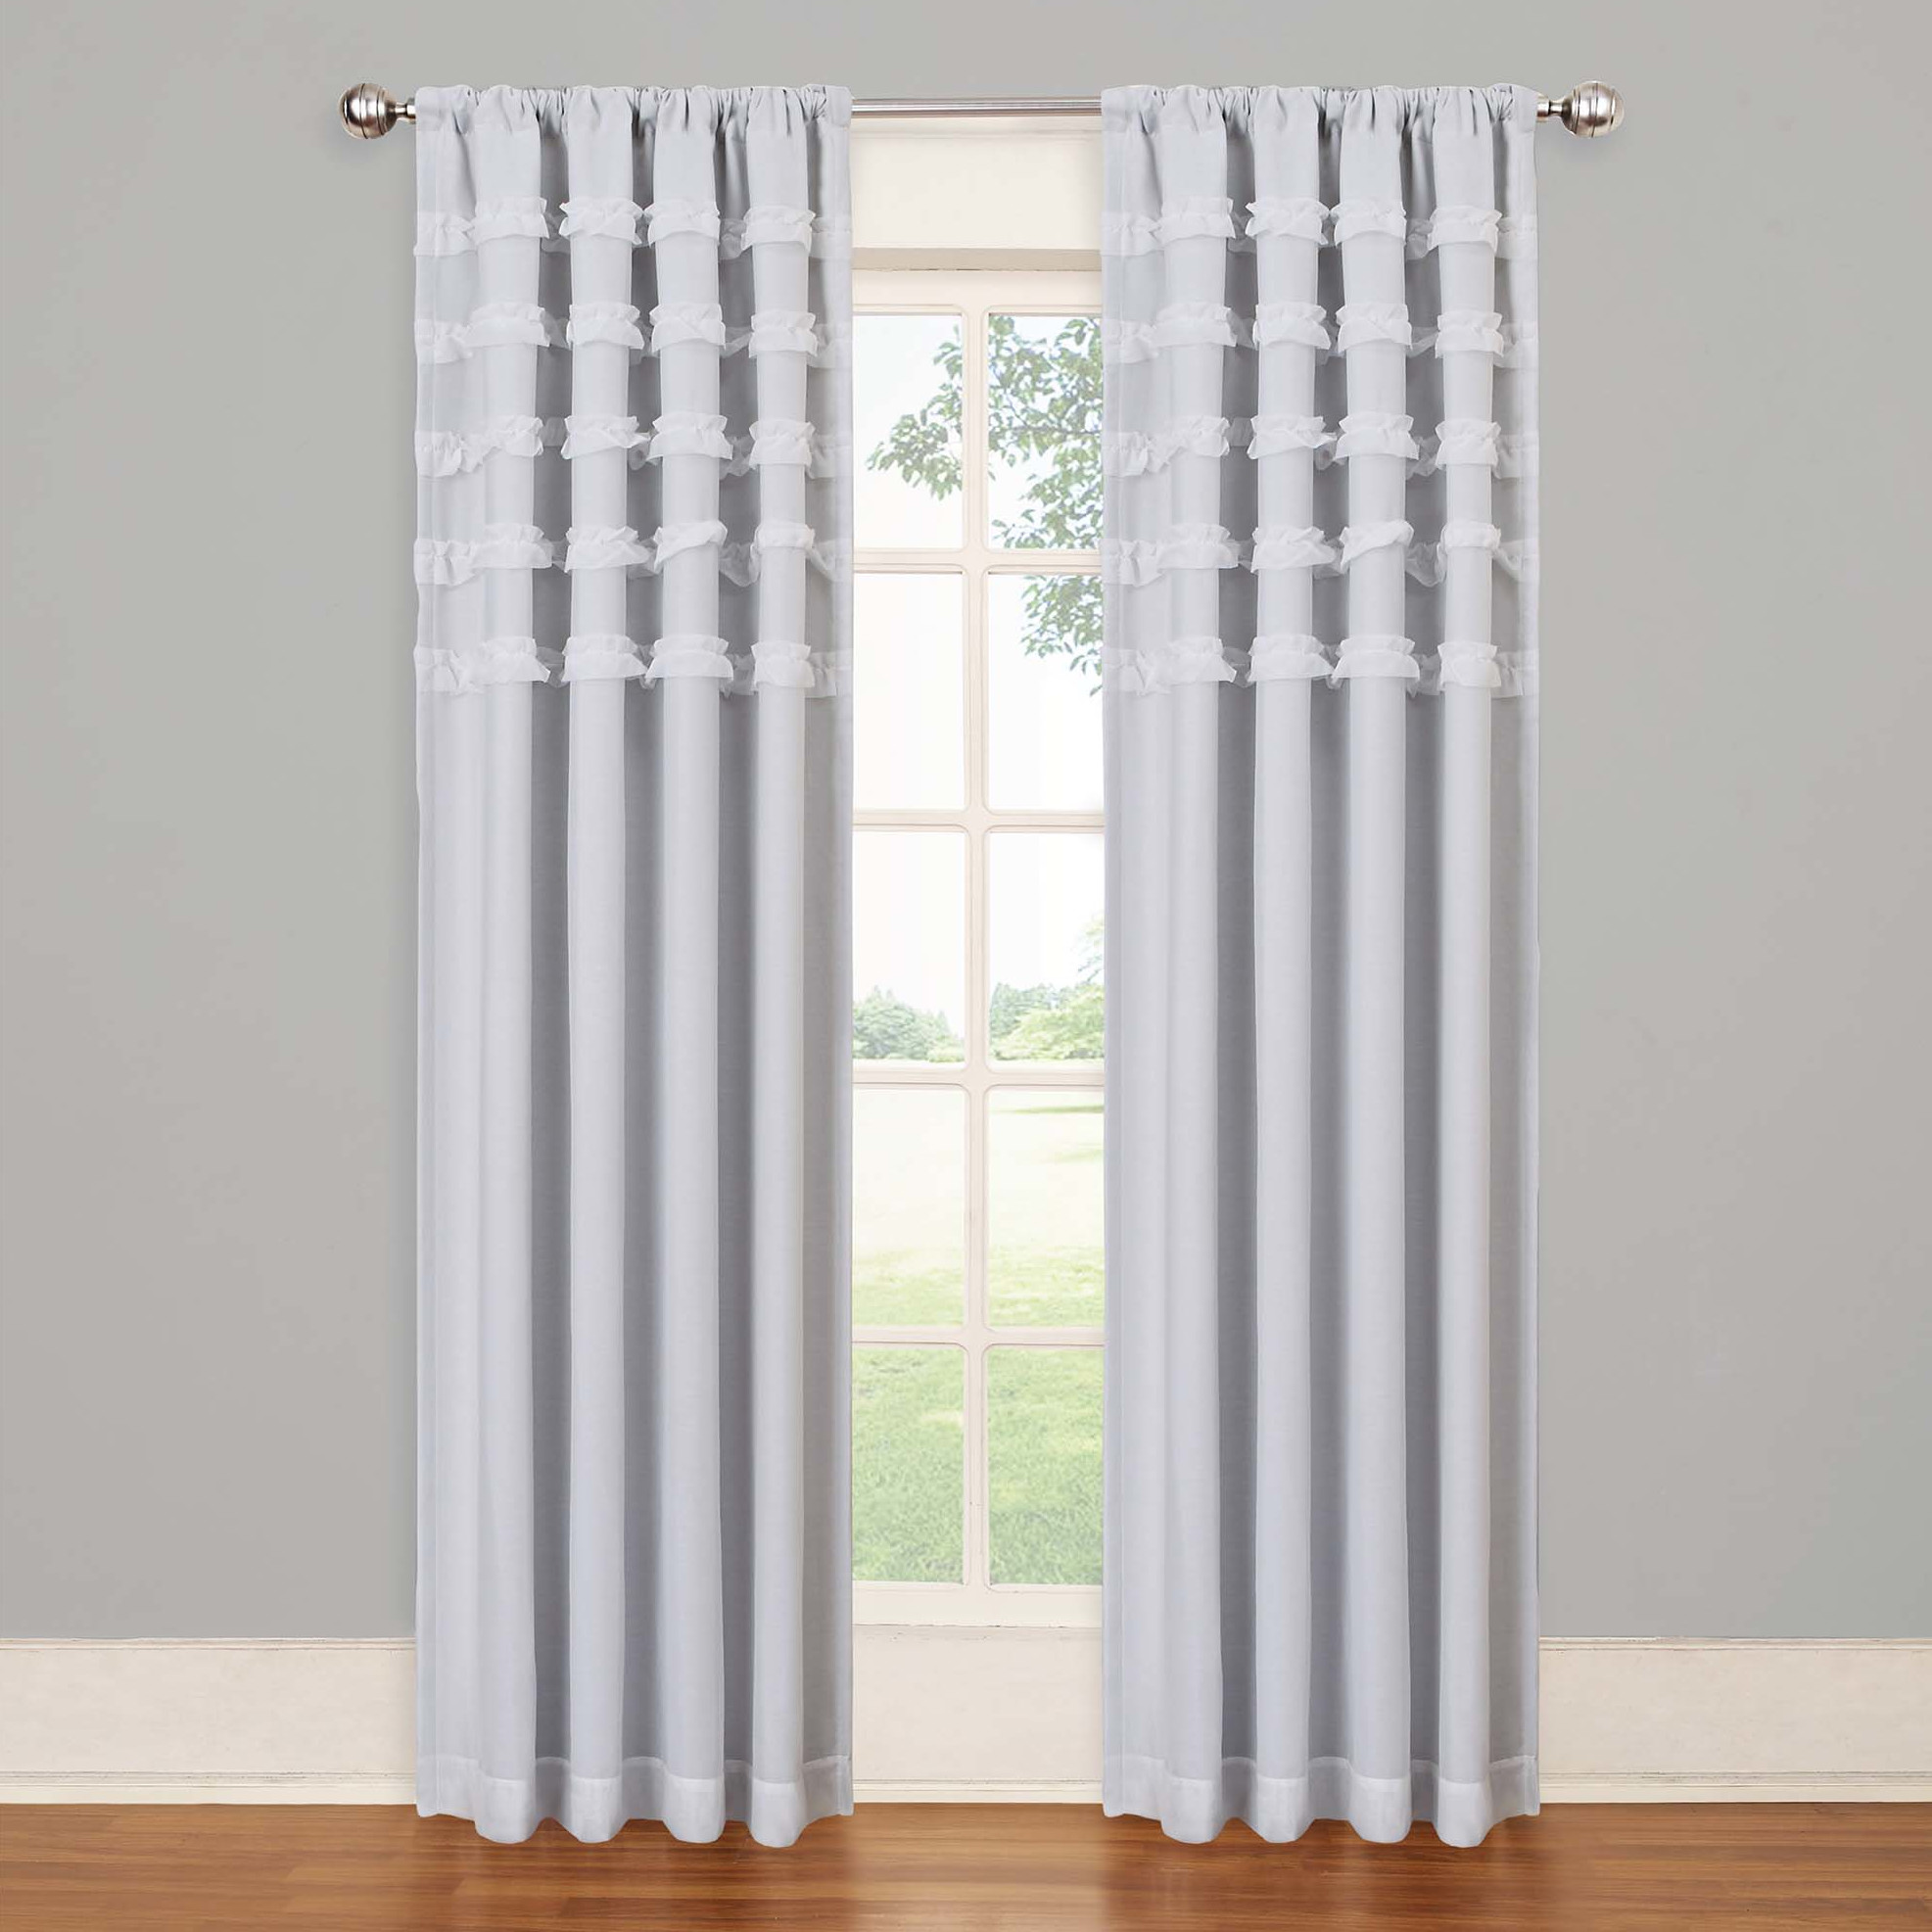 Walmart Window Curtains | Soundproof Curtains Target | Grey Curtains Target